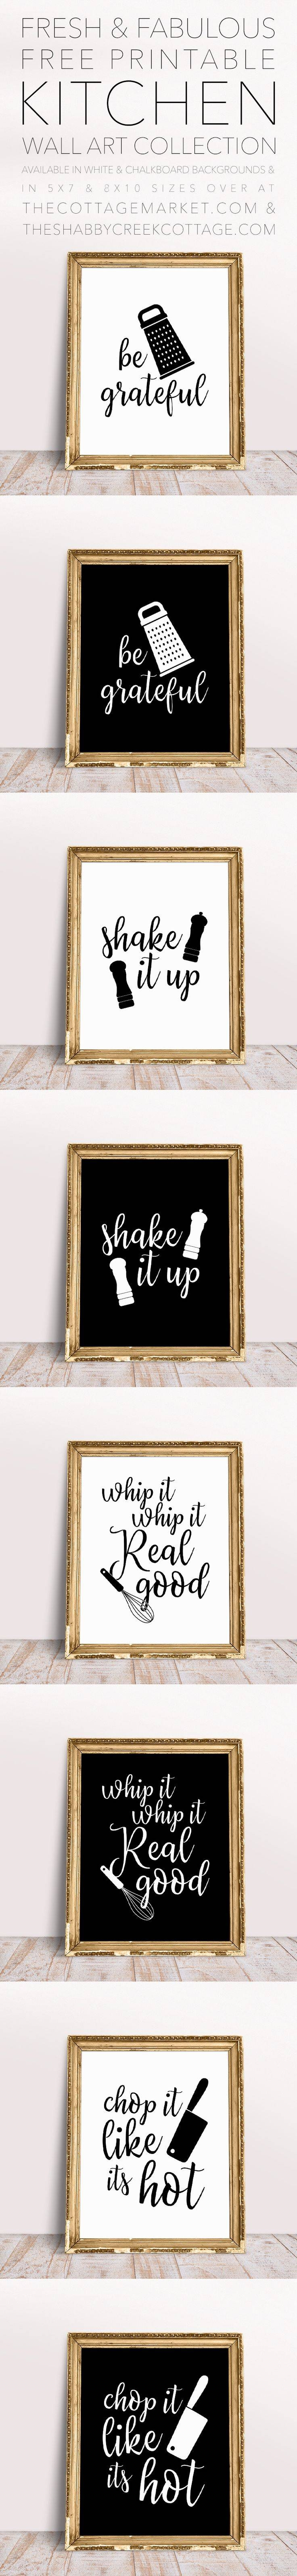 Best 25+ Kitchen Wall Art Ideas On Pinterest | Kitchen Prints Intended For Most Popular Kitchen Wall Art (View 24 of 25)